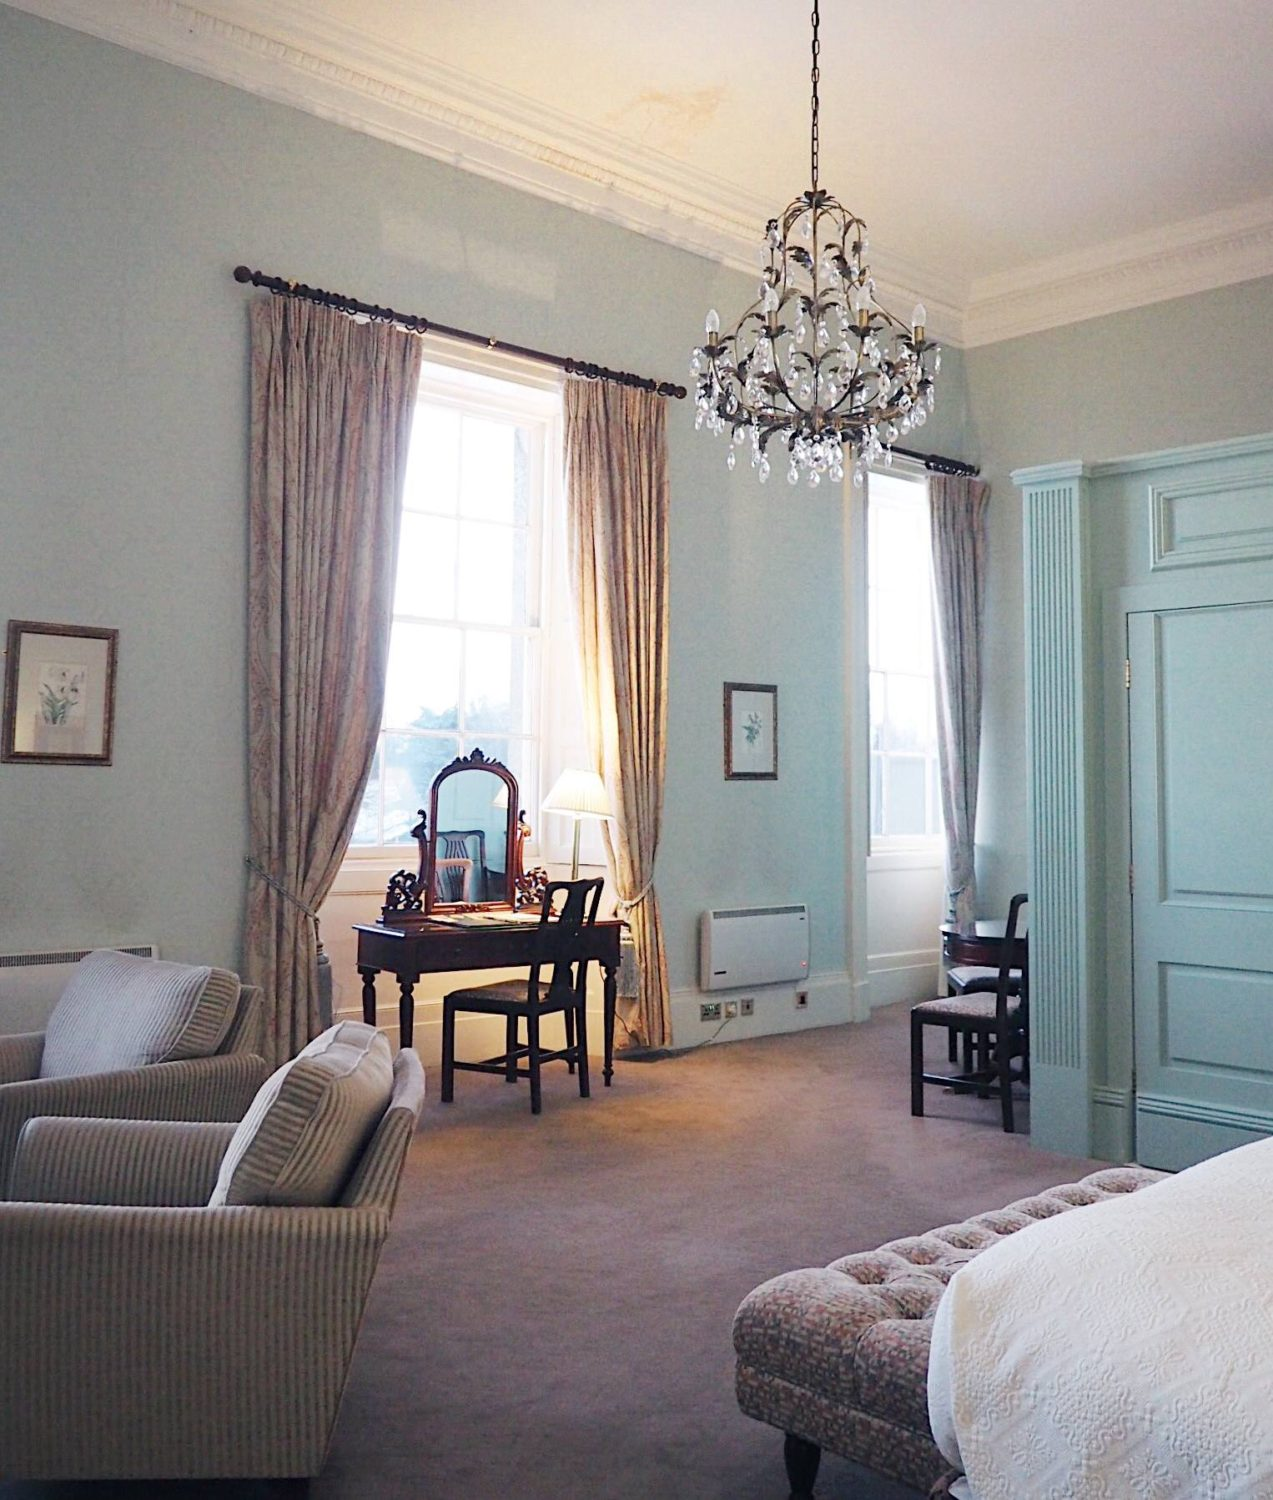 Wynyard hall hotel review: Frances Anne Suite review